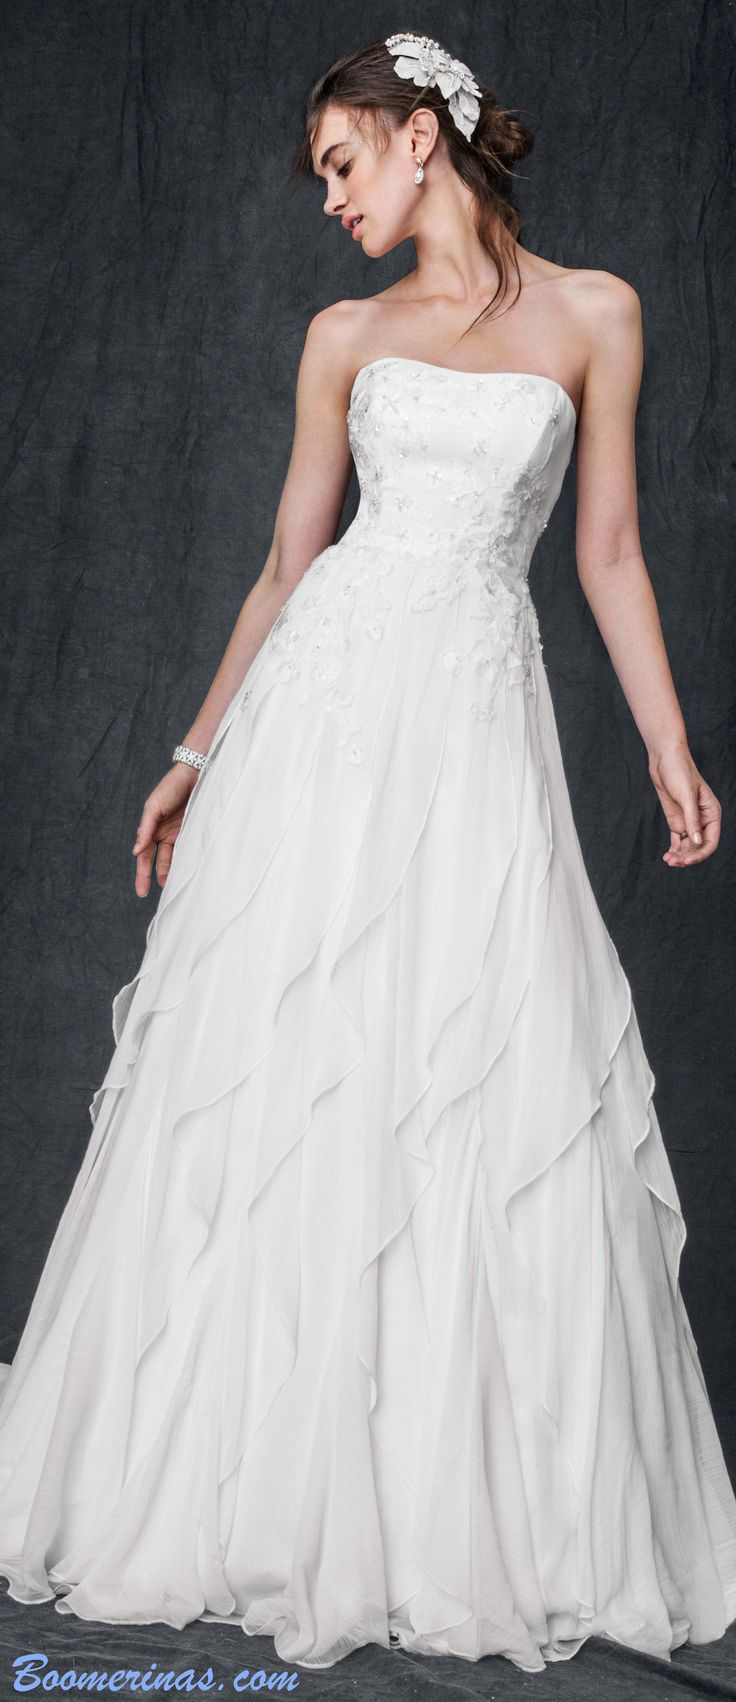 Elegant PERFECT wedding dress with floaty skirt for romantic woodland weddings Comes in plus size from